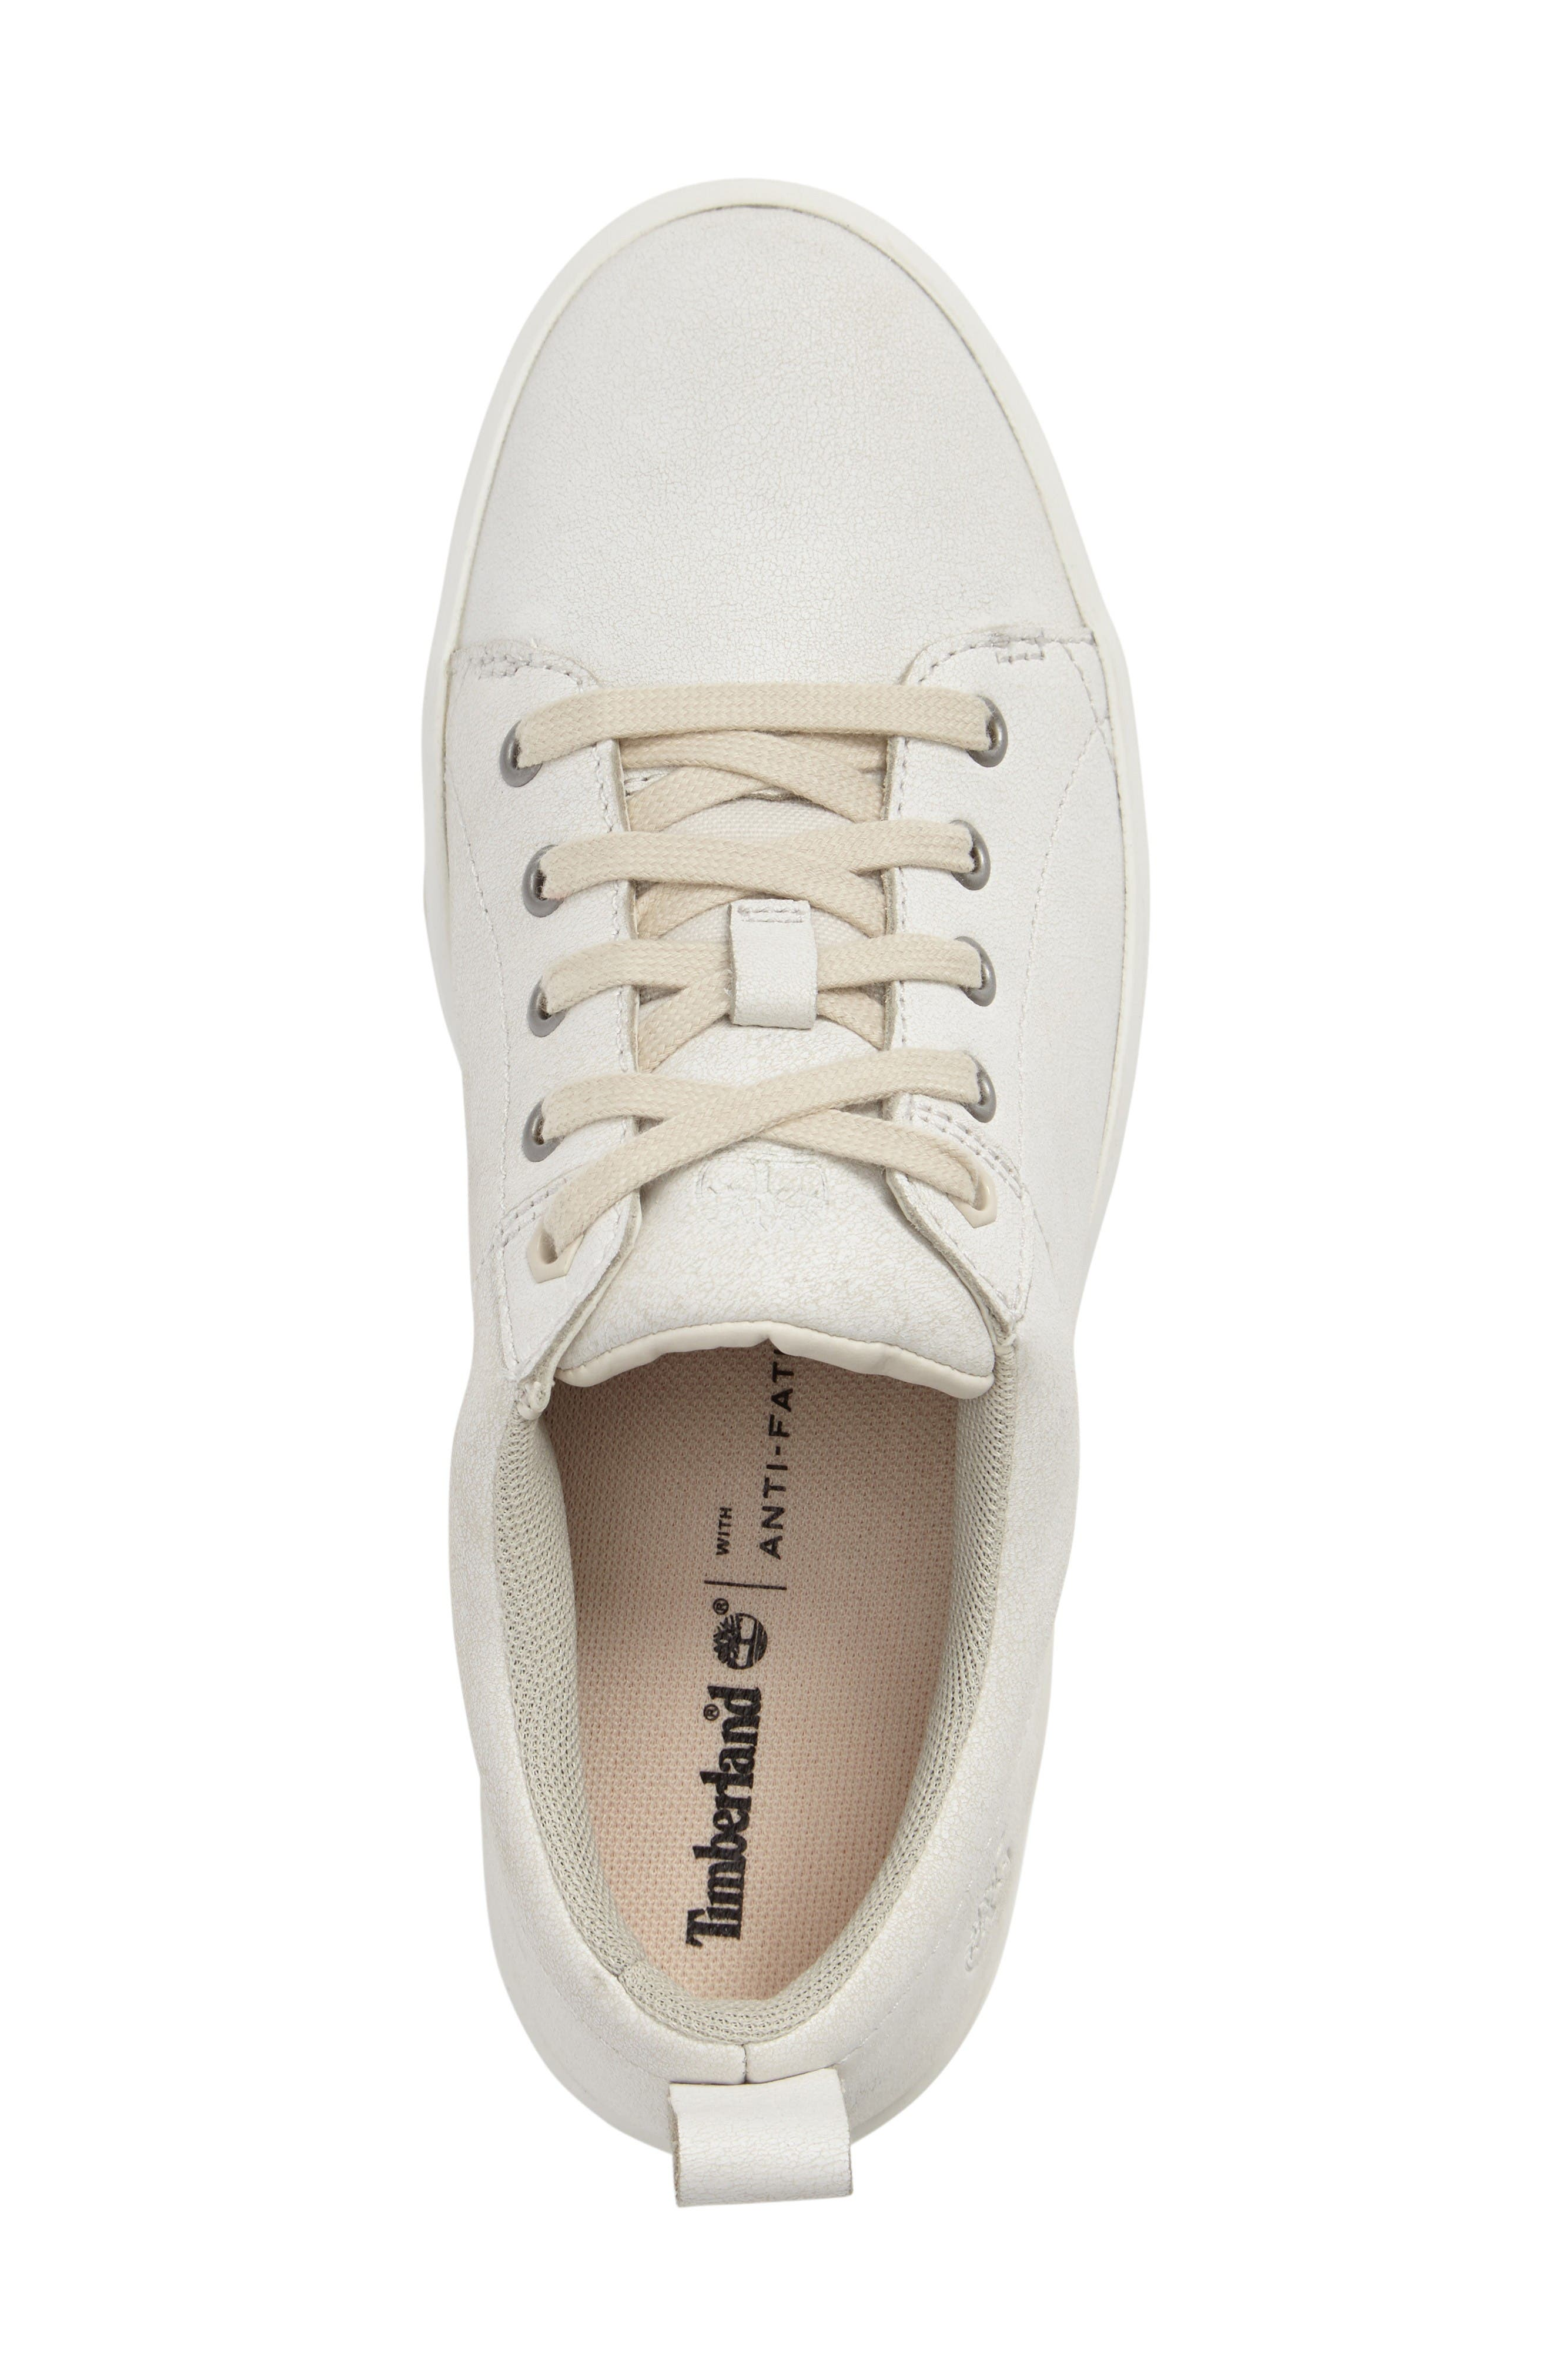 Mayliss Oxford Sneaker,                             Alternate thumbnail 3, color,                             White Mystic Snake Suede